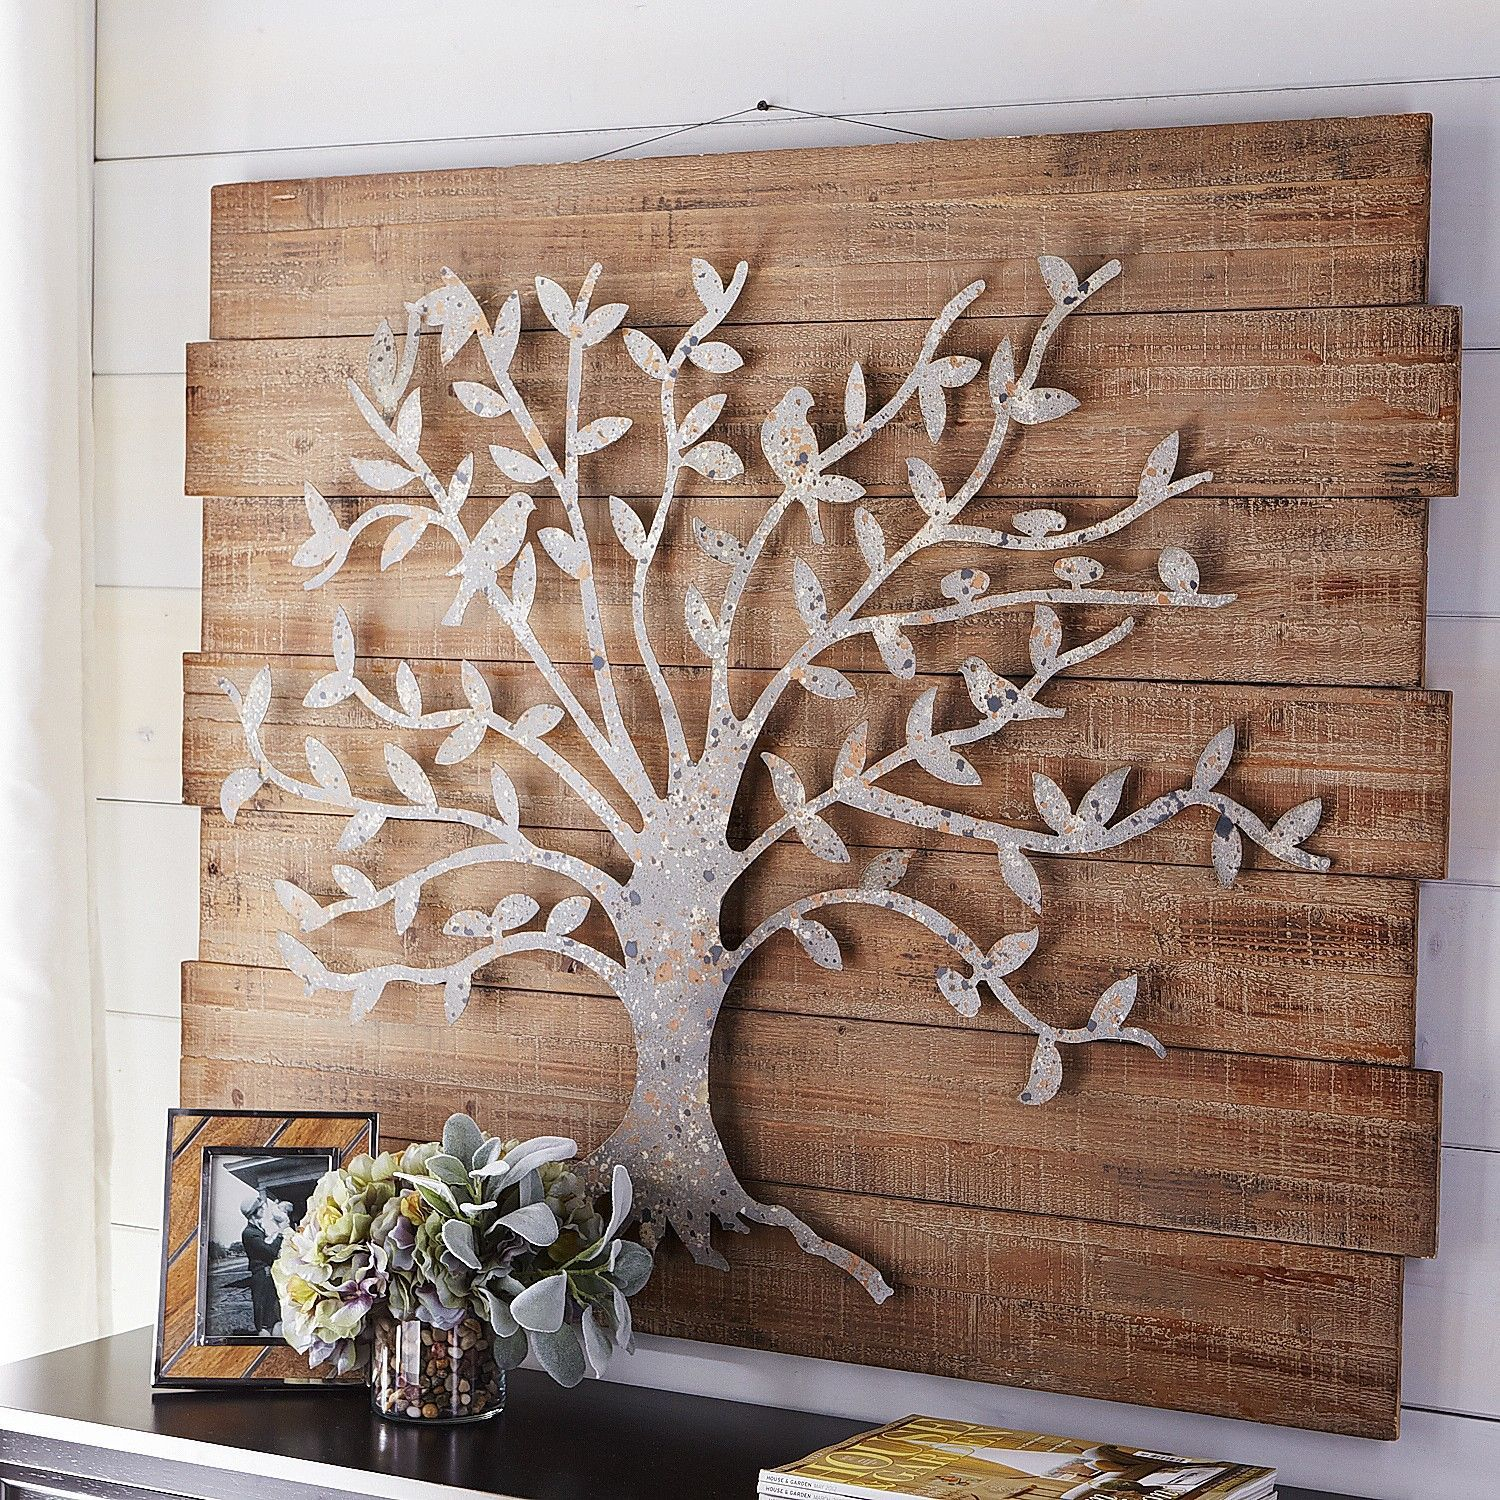 Timeless Tree Wall Decor | Pier 1 Imports … | Metal Work In Regarding Tree Wall Decor (View 3 of 30)